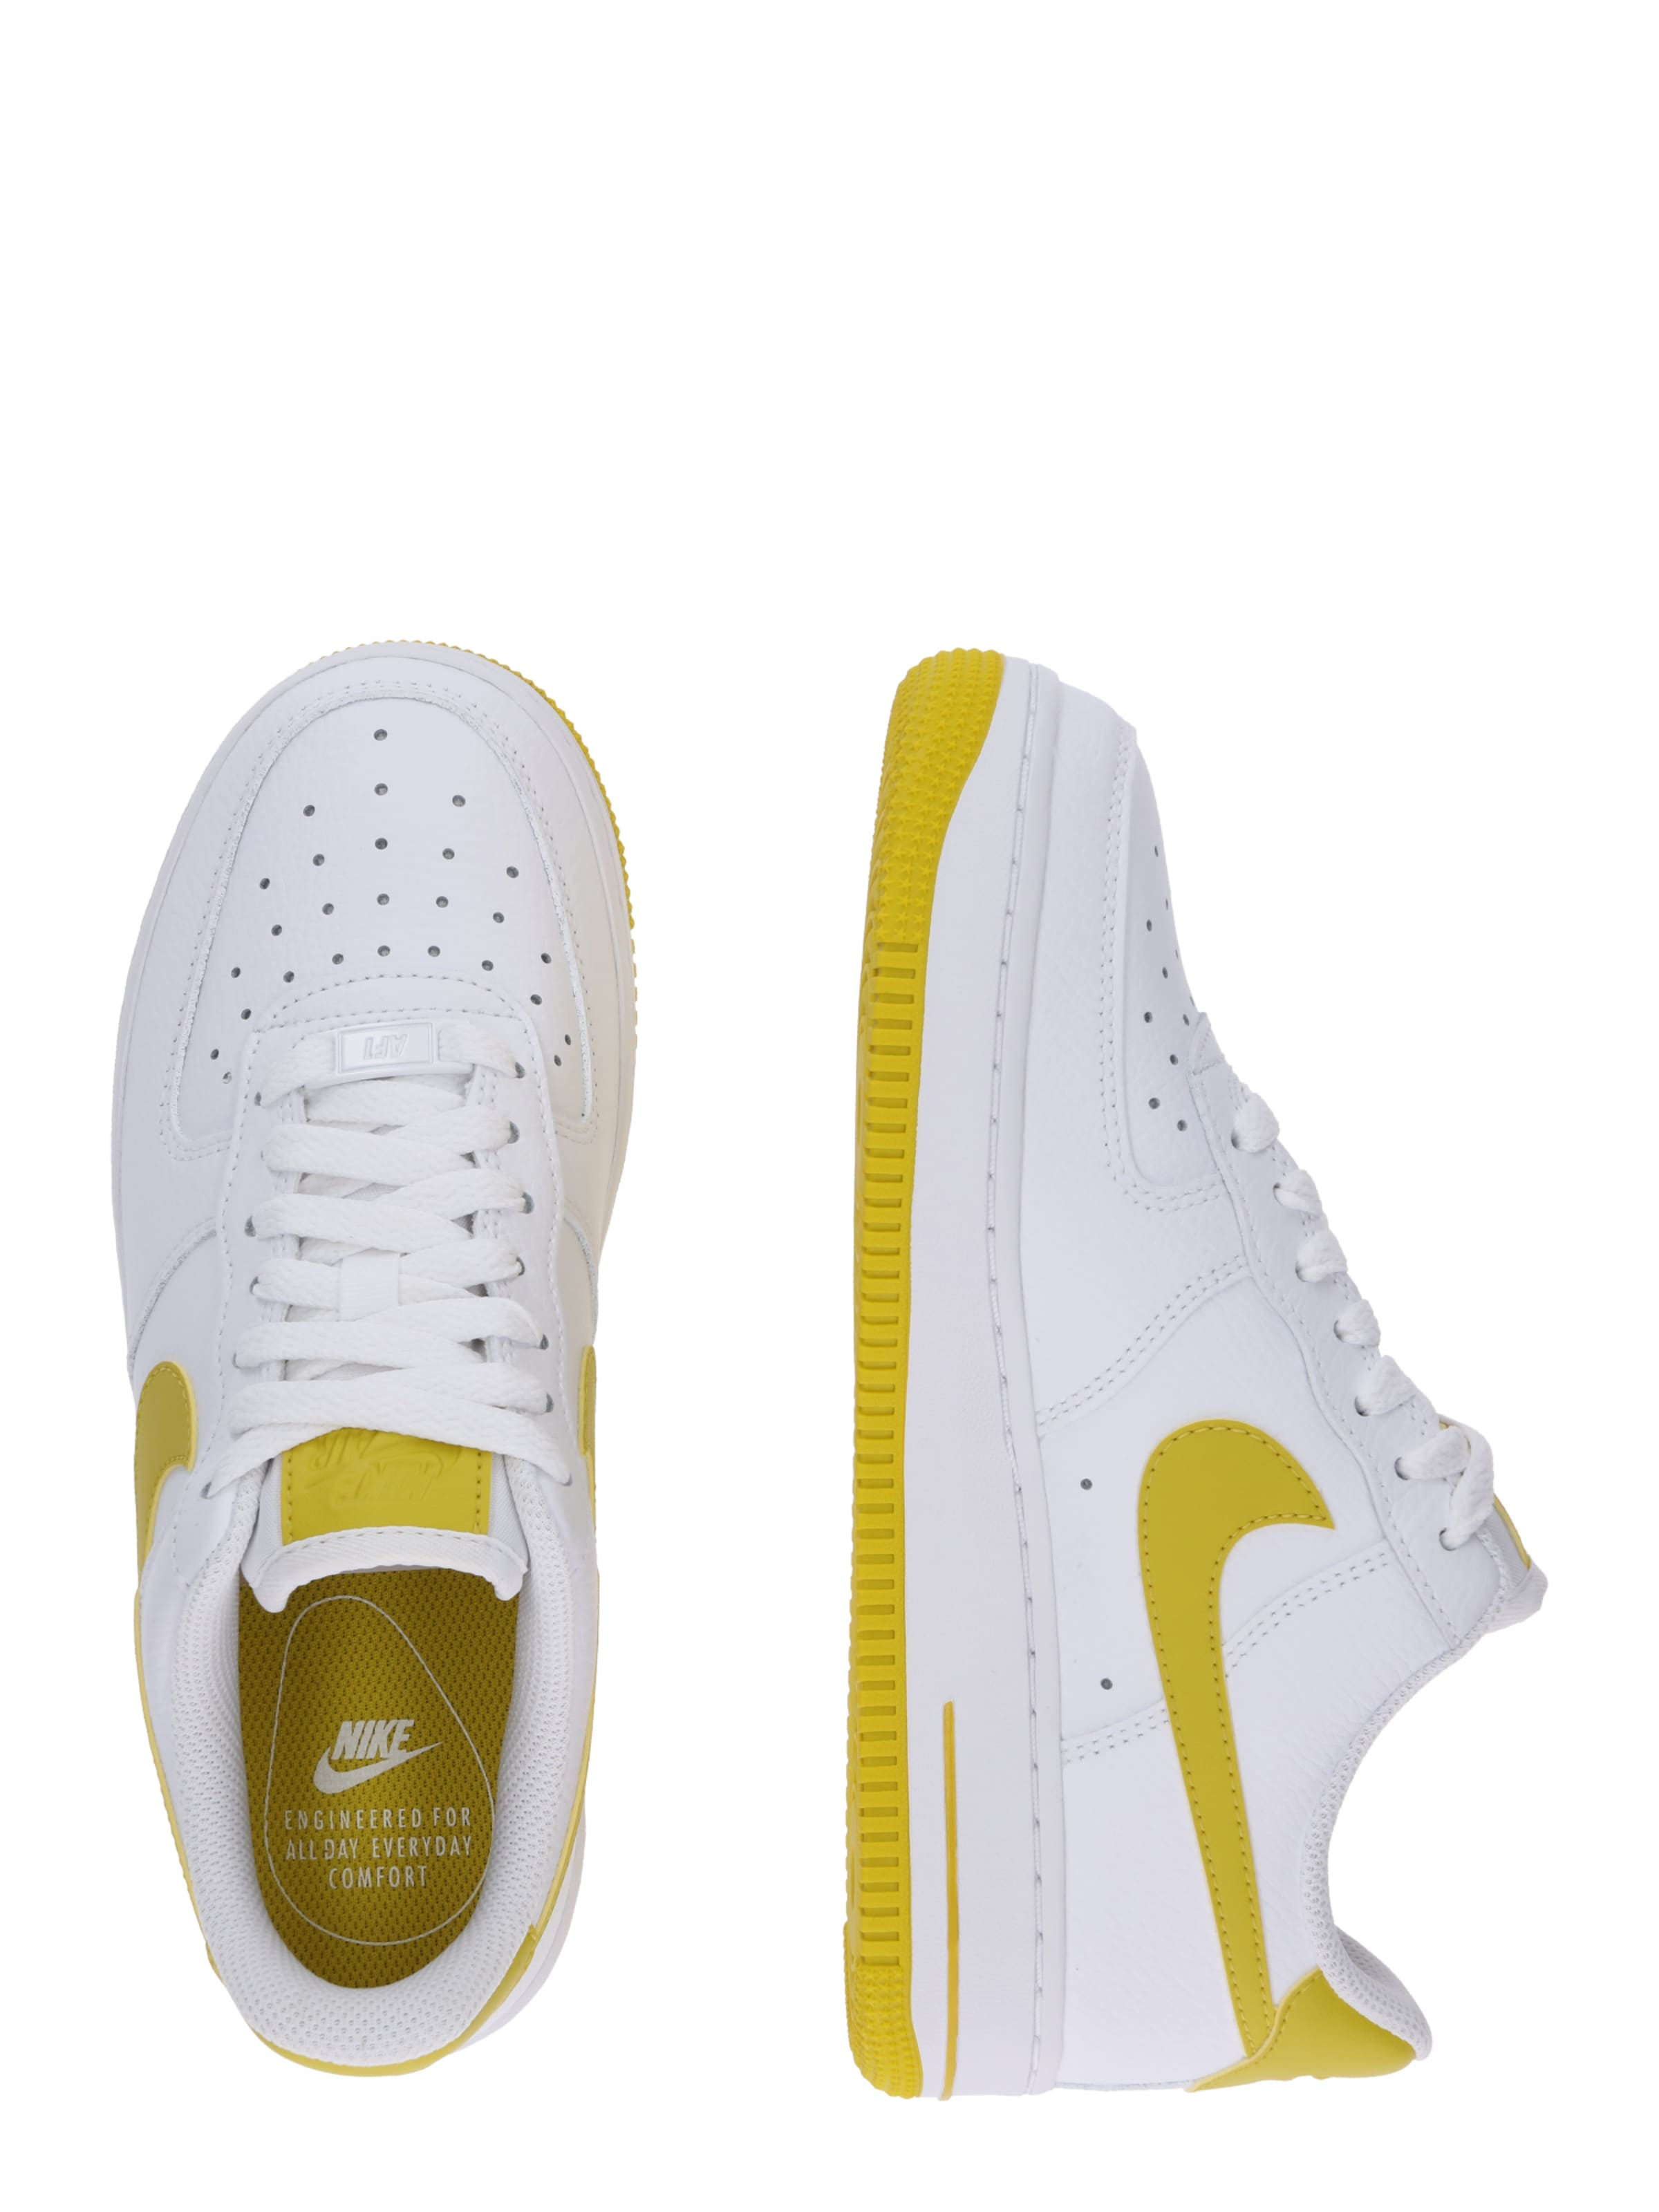 Sneaker Low In Nike 'air Force 1 '07' Sportswear GelbWeiß Ee29WIDHY